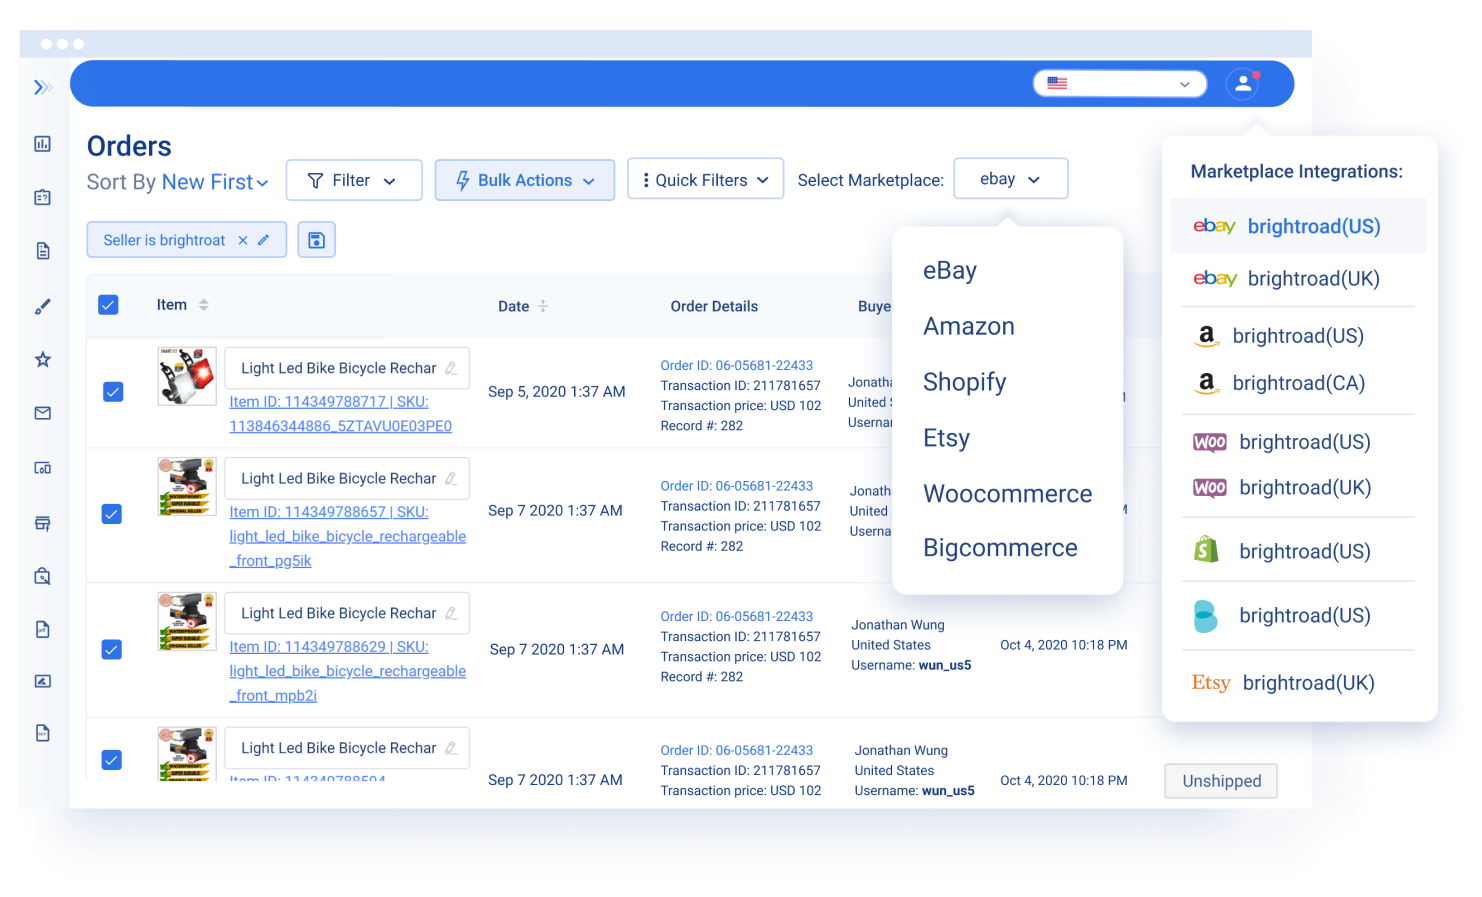 Showcased screenshot of 3Dsellers' Multichannel Orders Manager for Amazon, eBay, WooCommerce, Etsy, Shopify, email, and more.